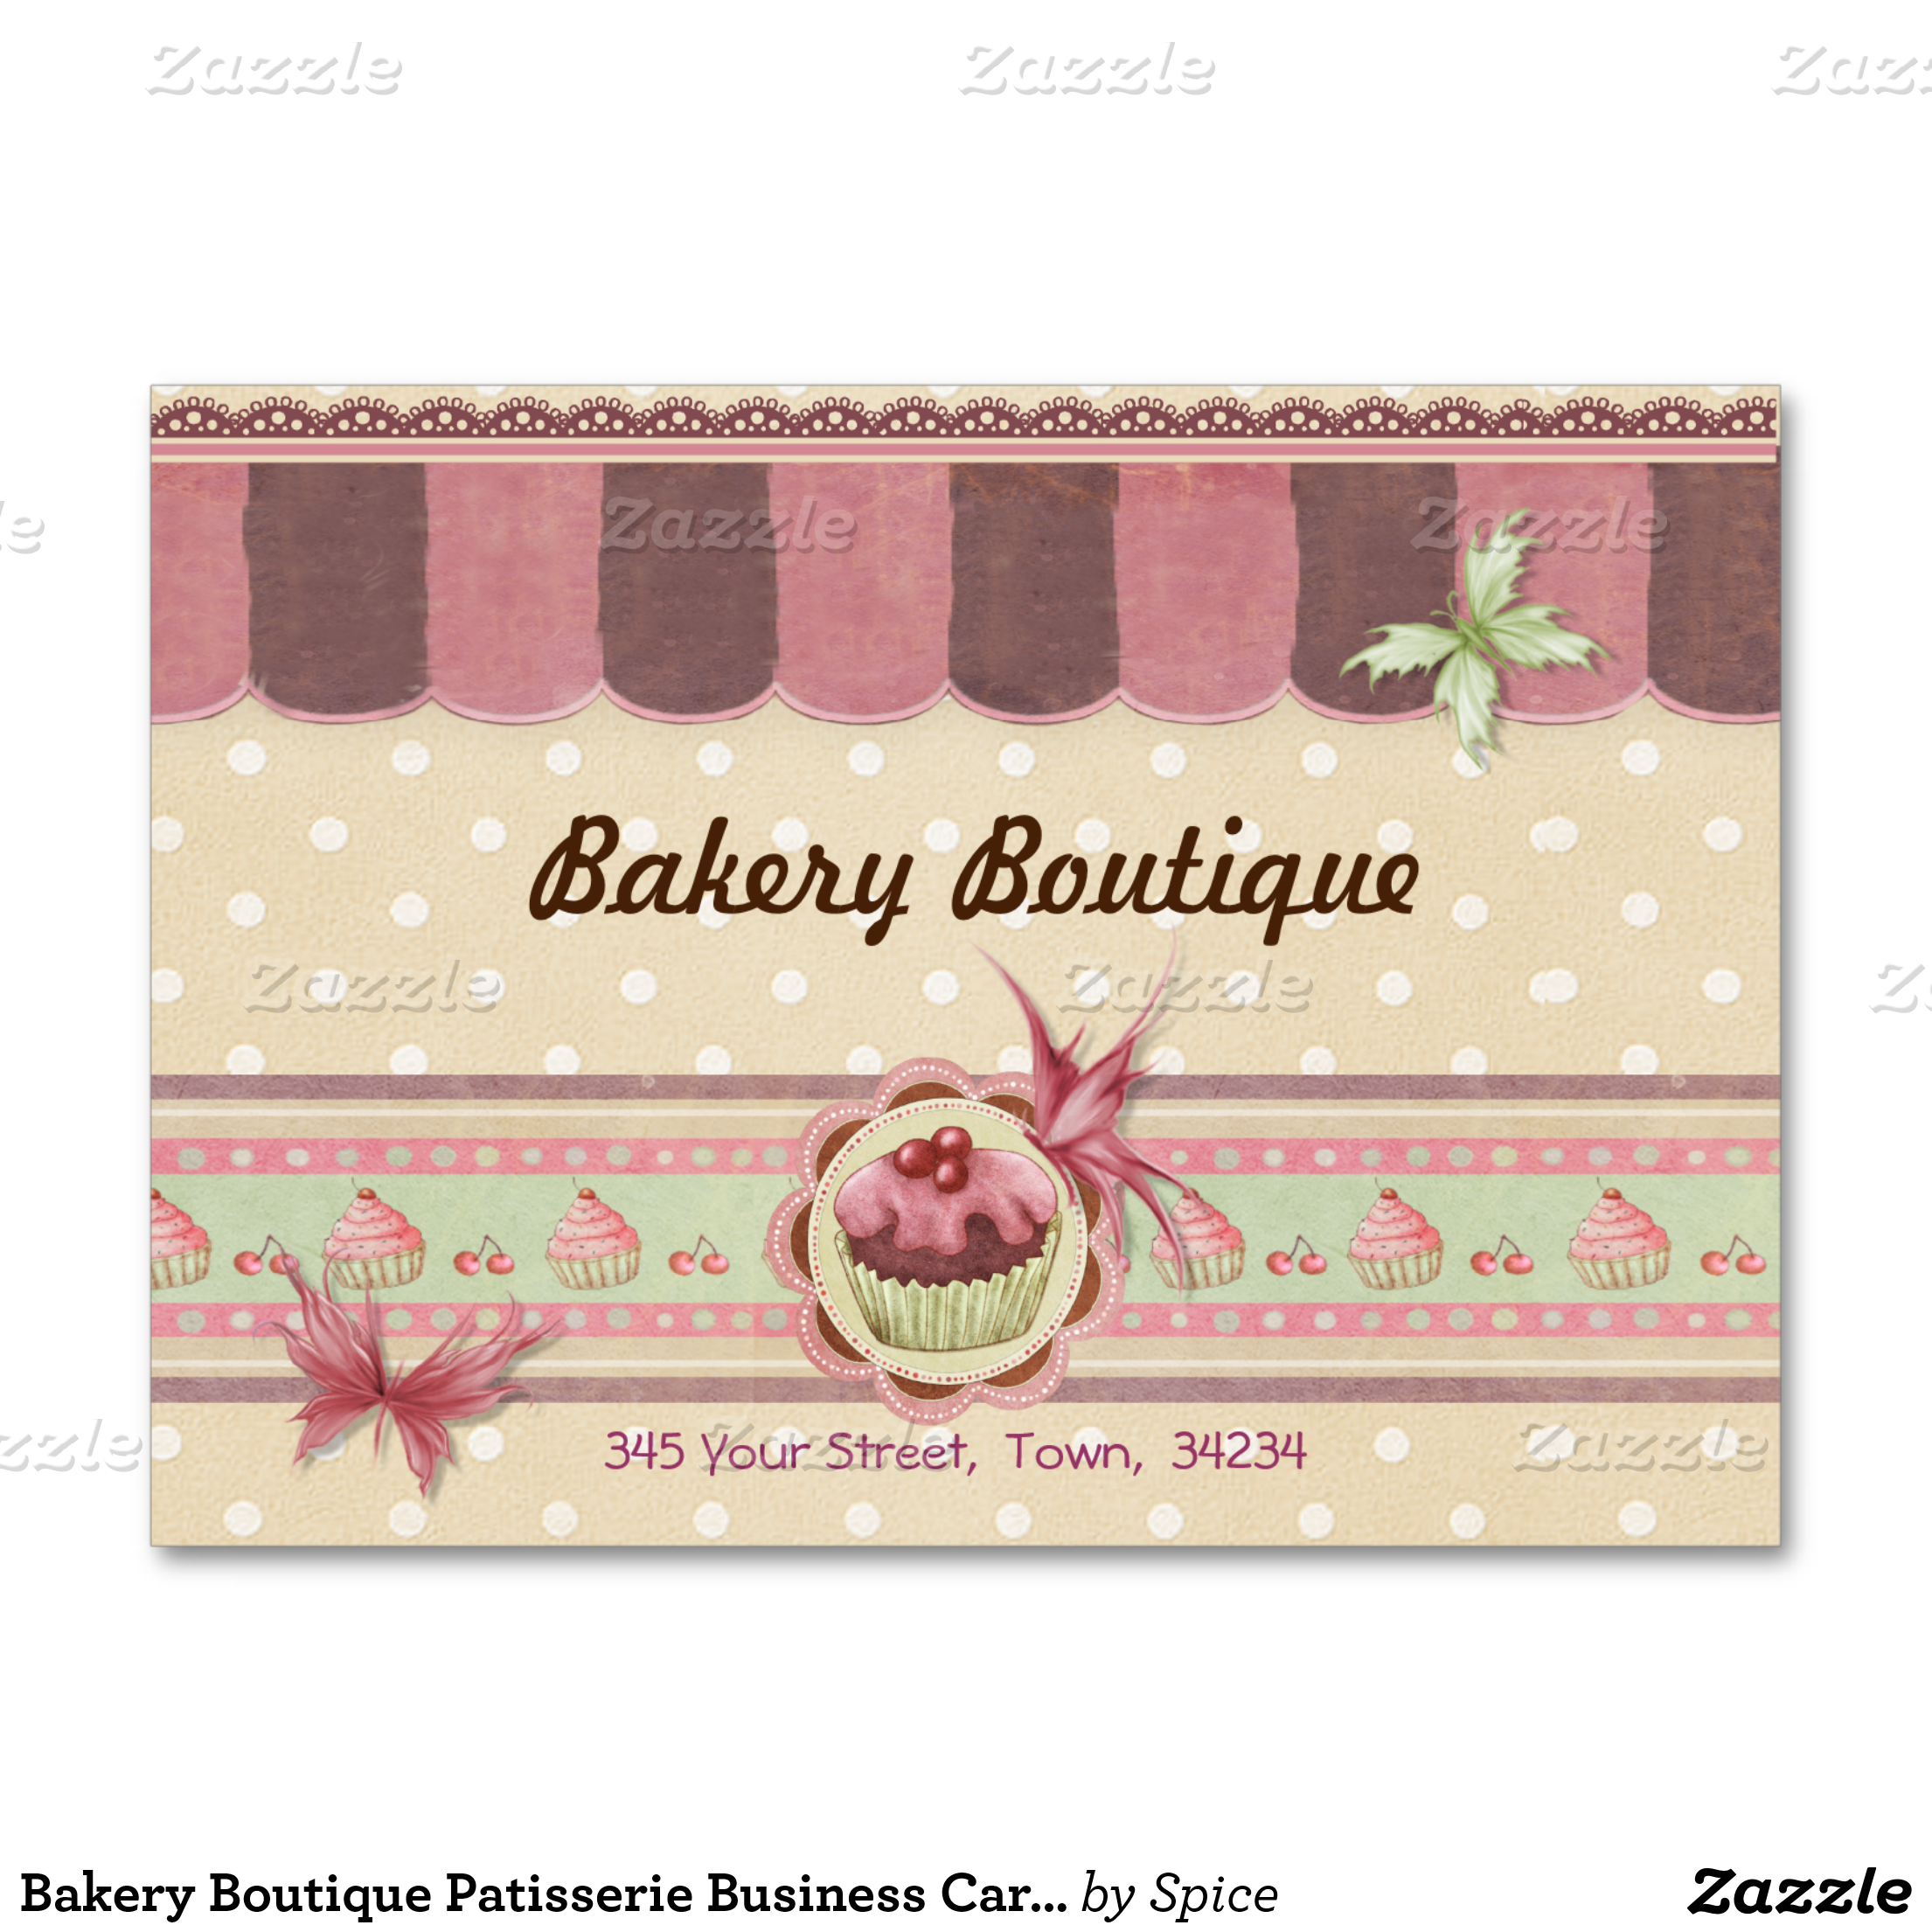 Bakery Boutique Patisserie Business Card 3